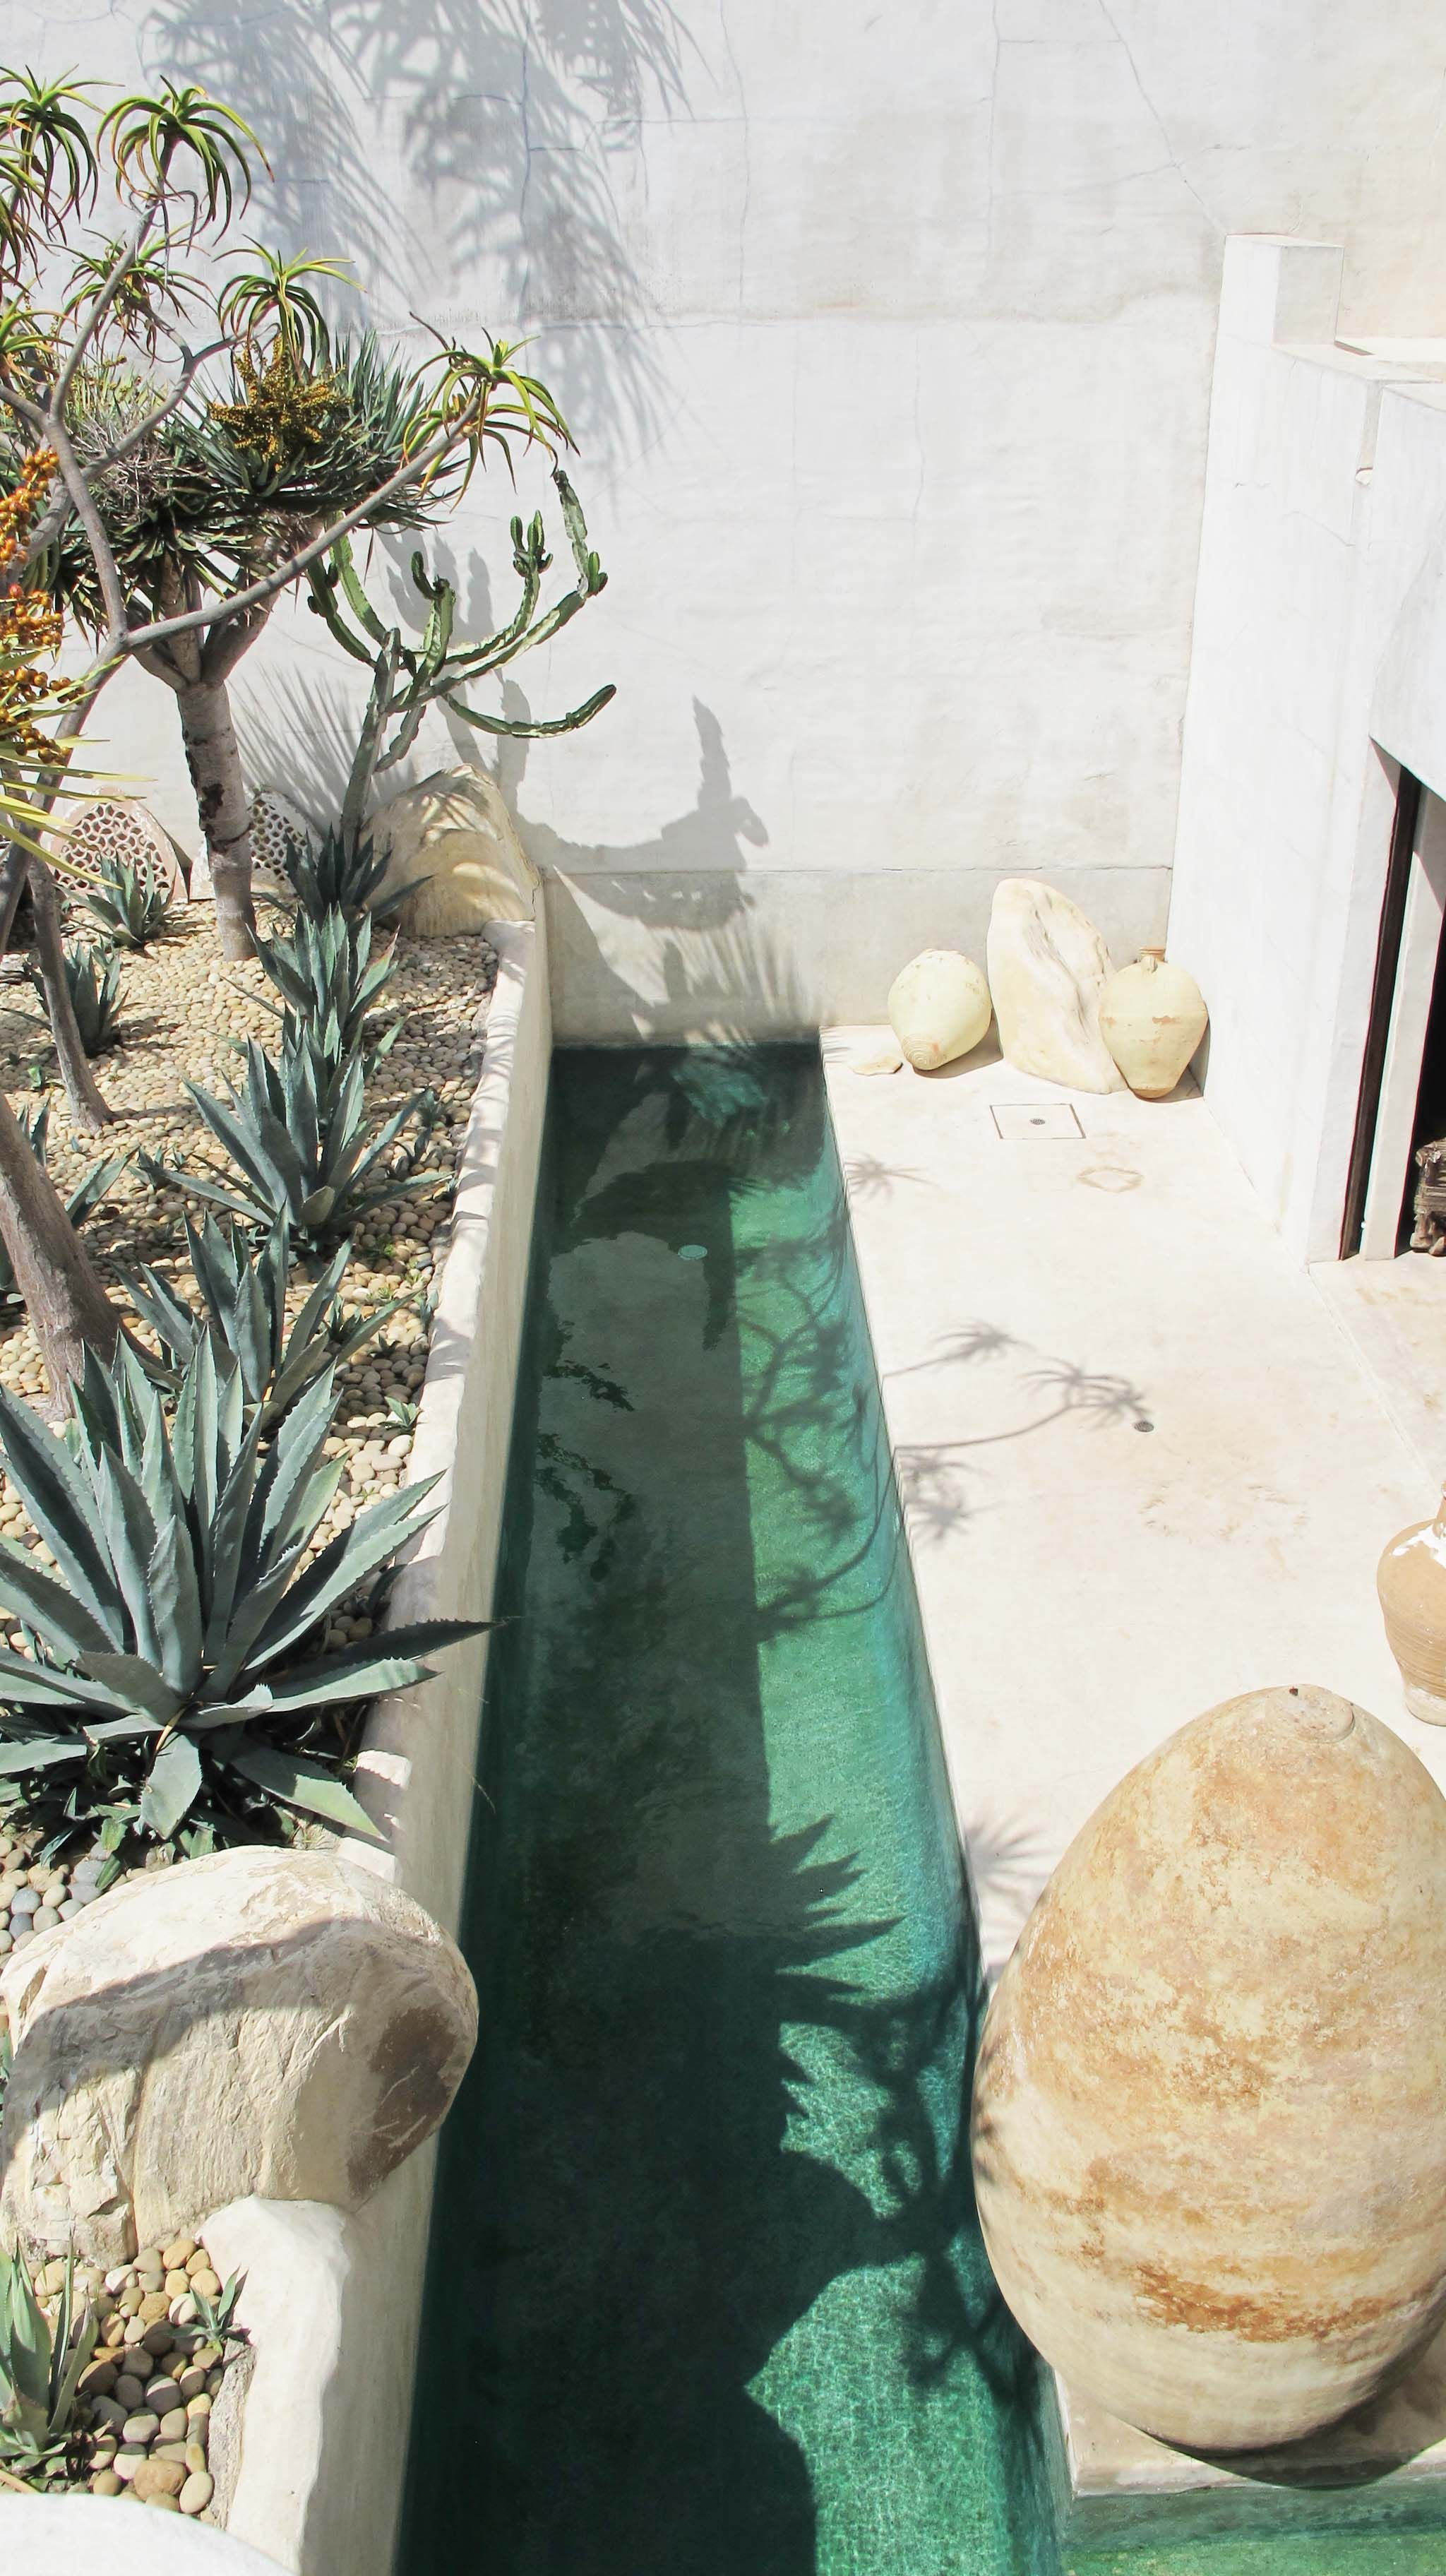 moroccan garden in venice california | follow @shophesby for more ...